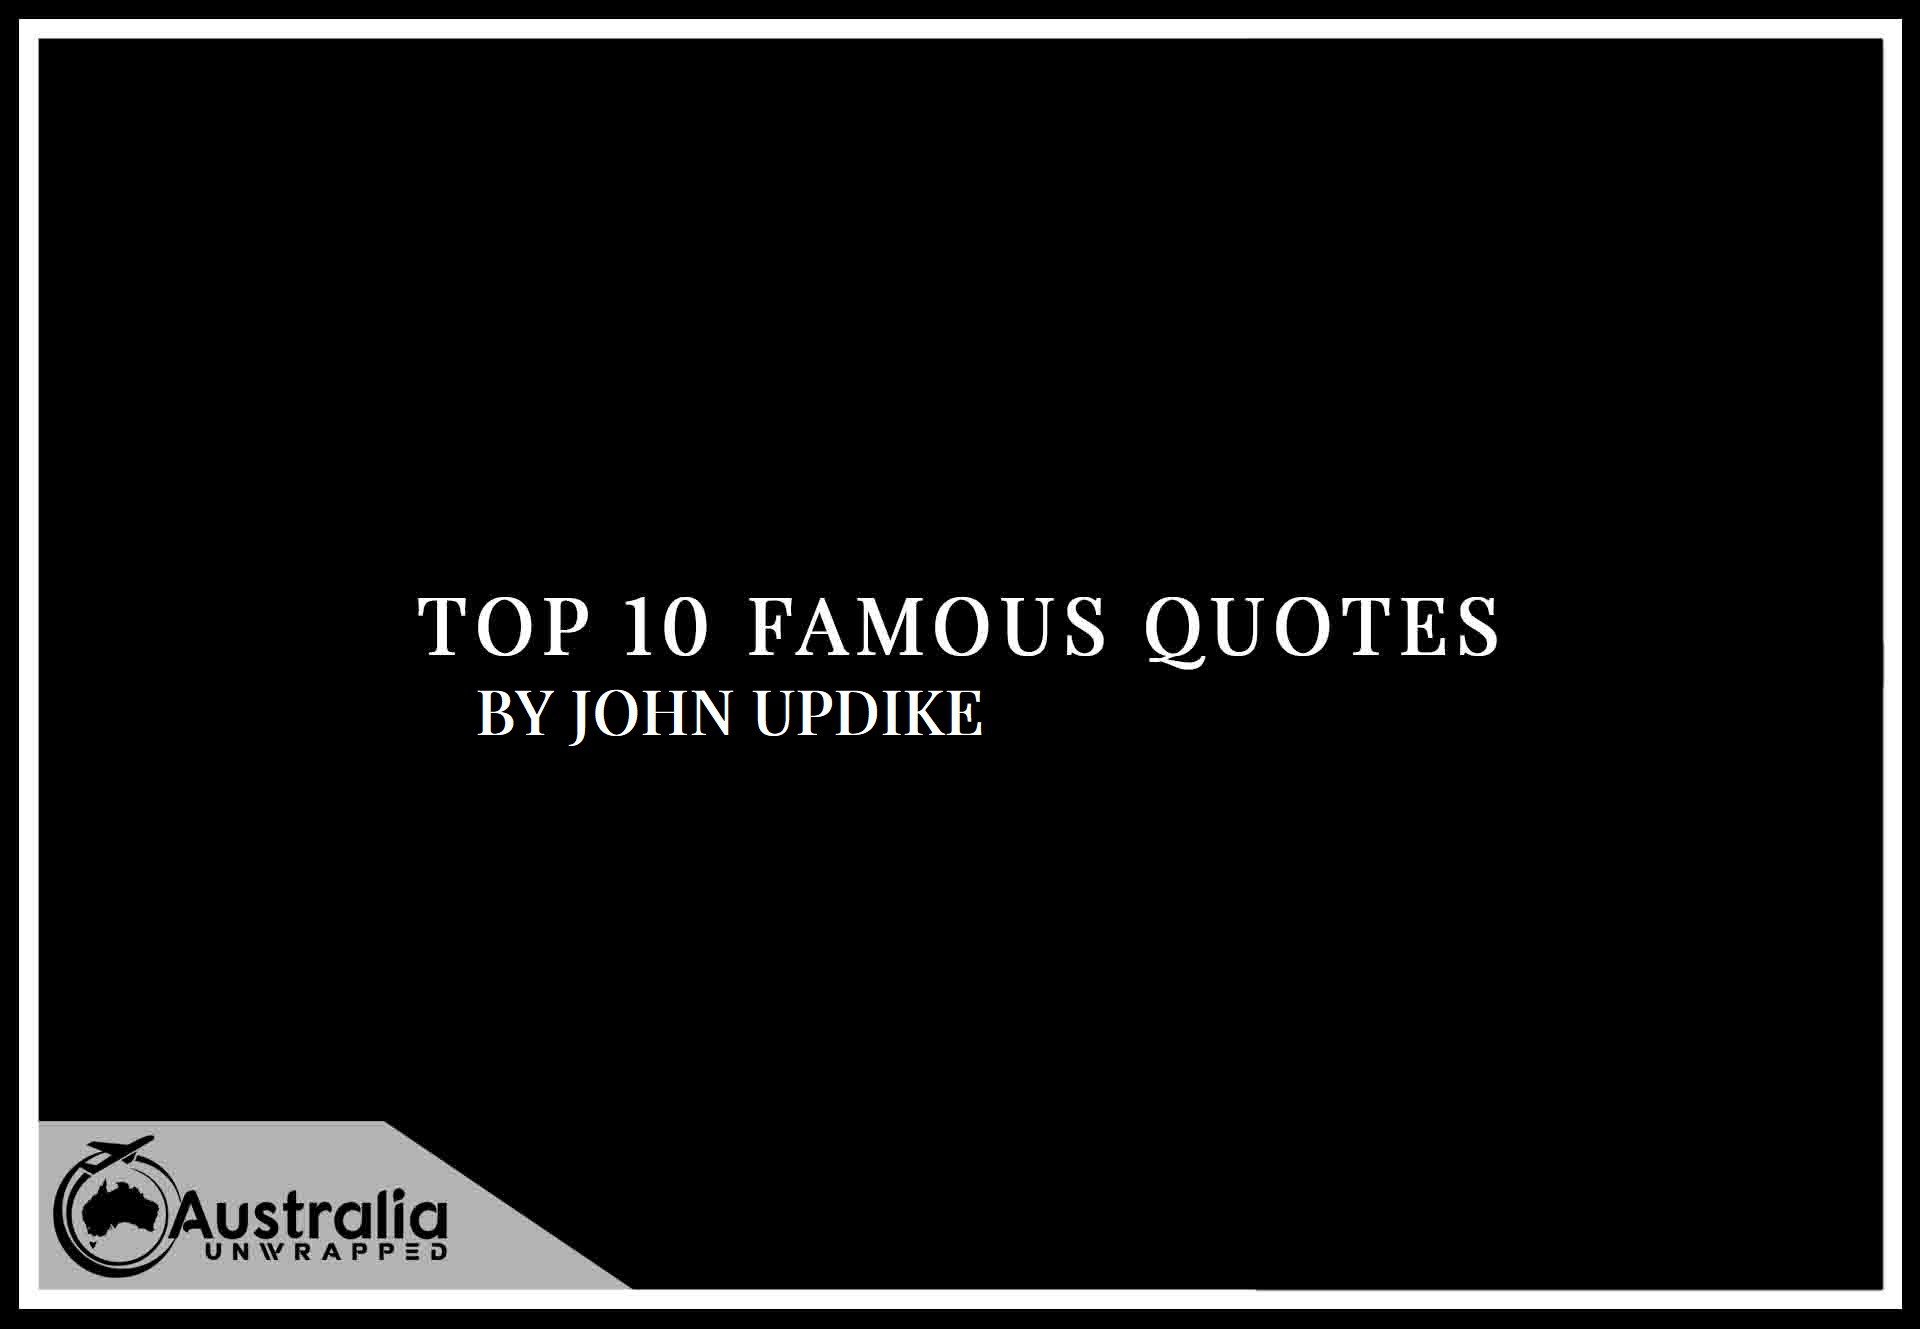 Top 10 Famous Quotes by Author John Updike